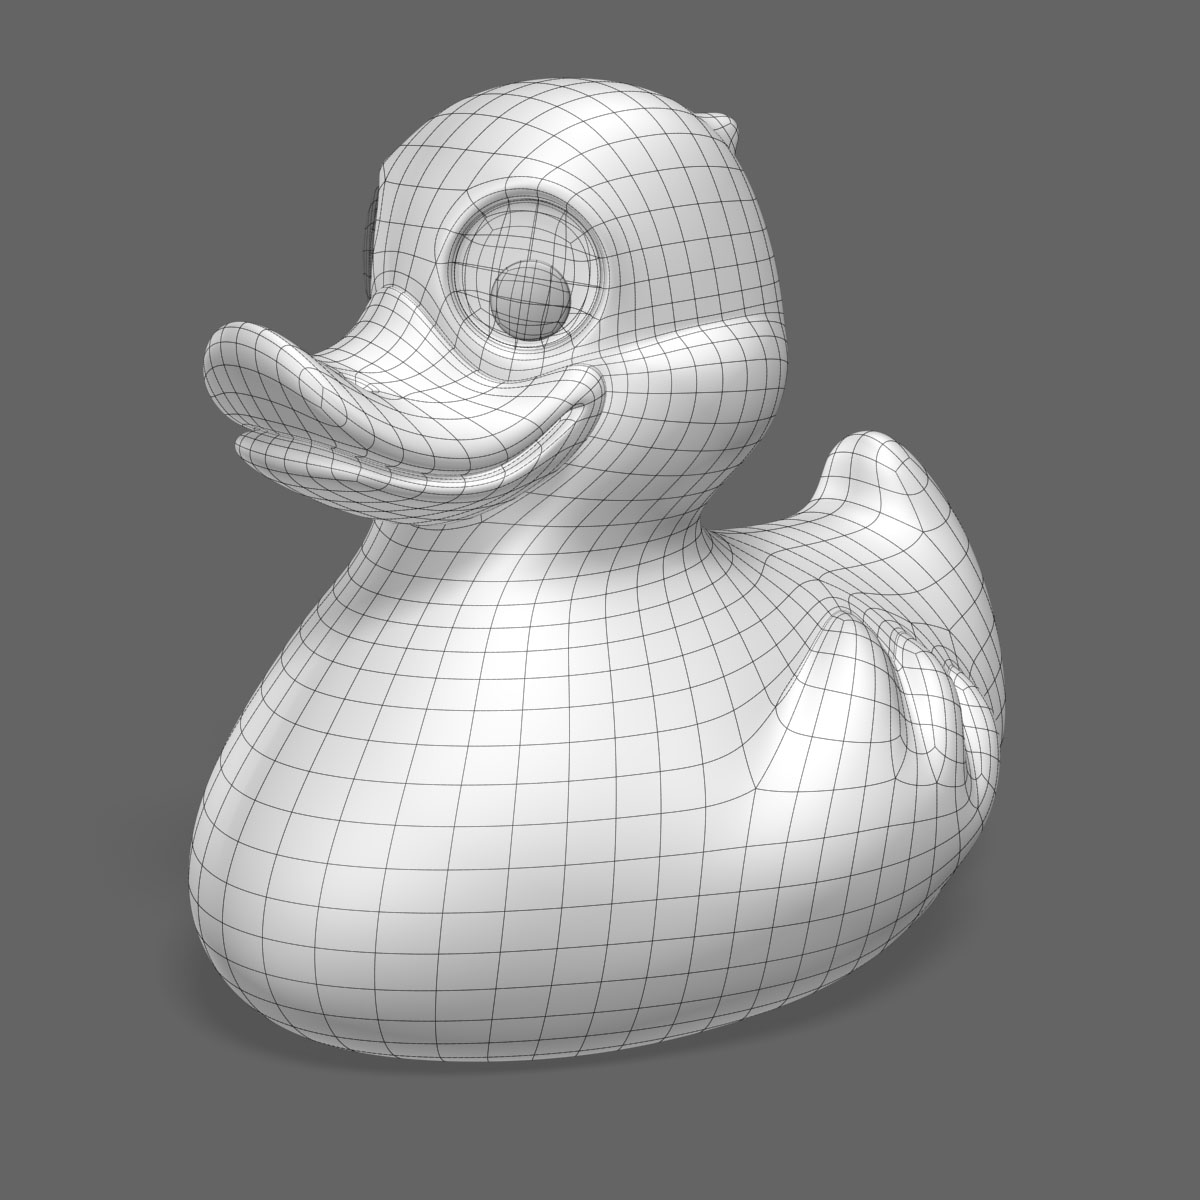 Rubber-Duck-2